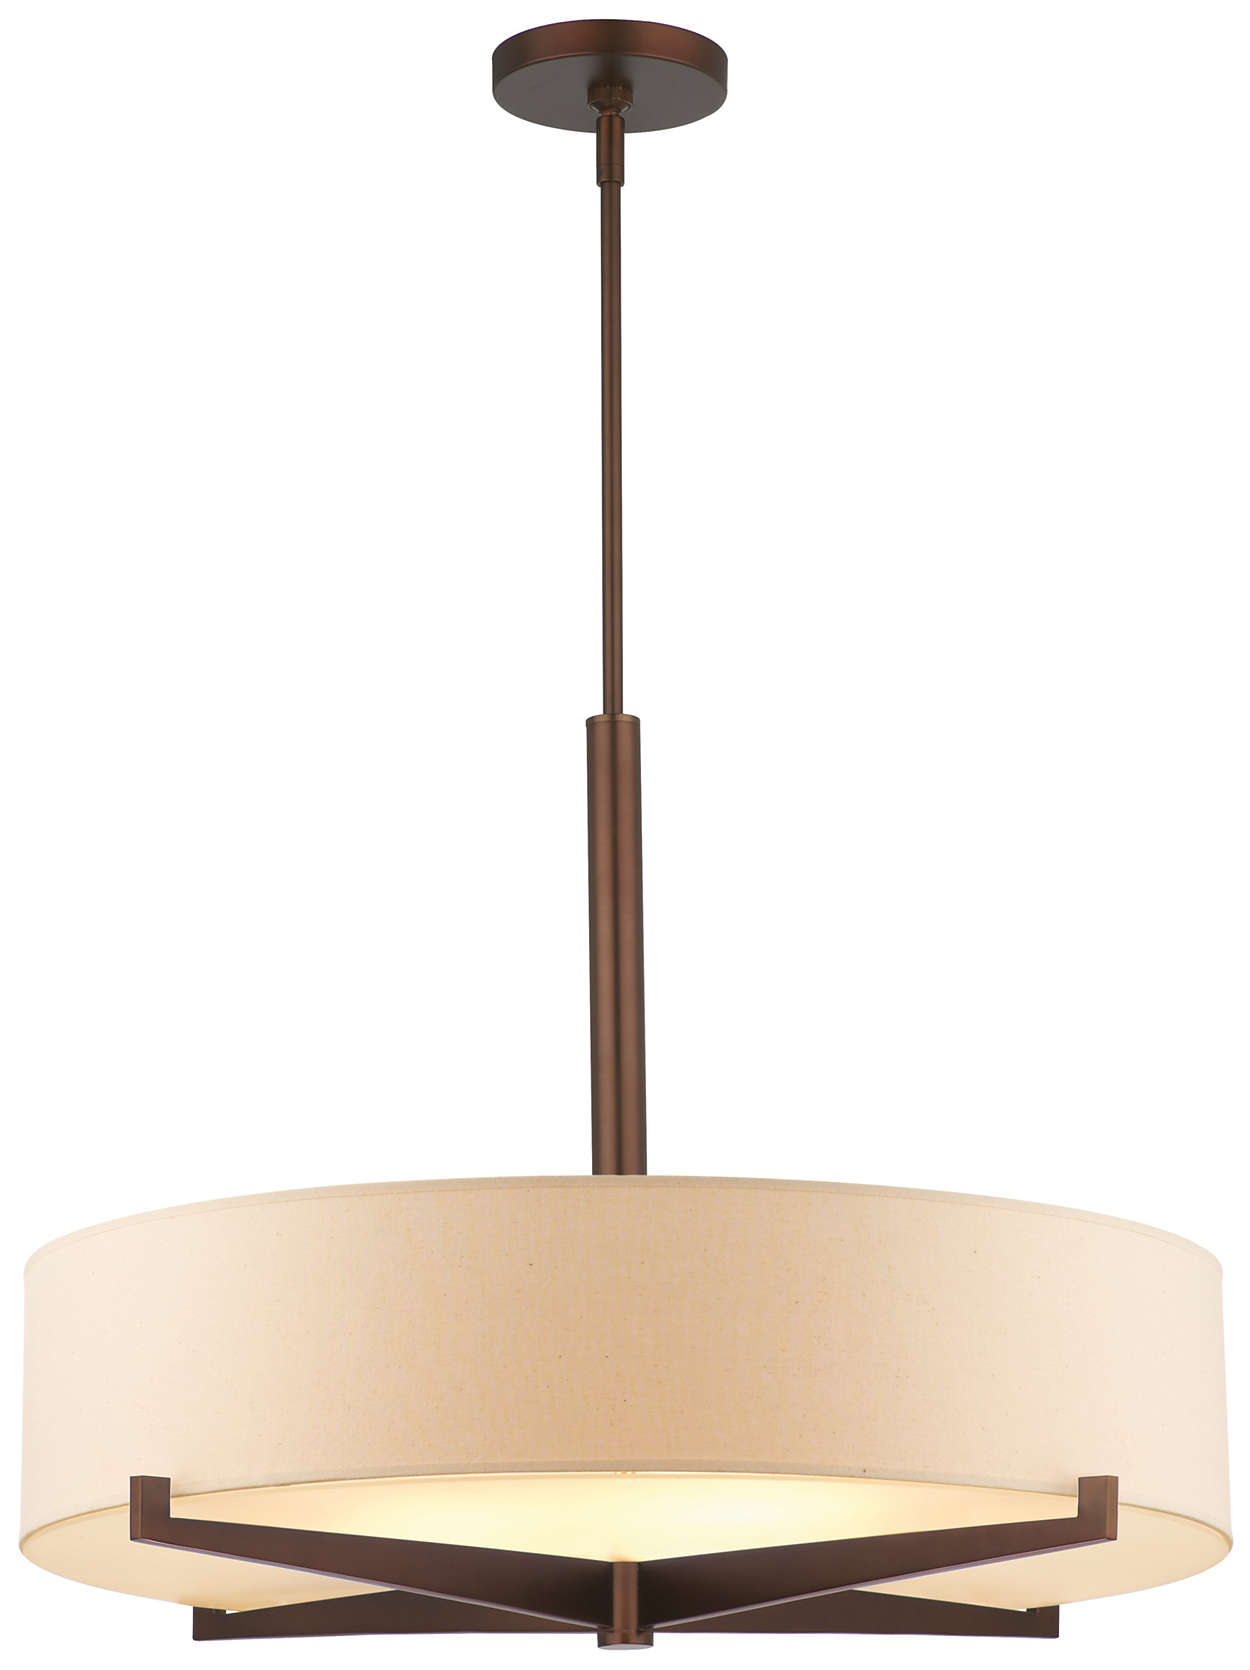 Fisher Island 3-light pendant